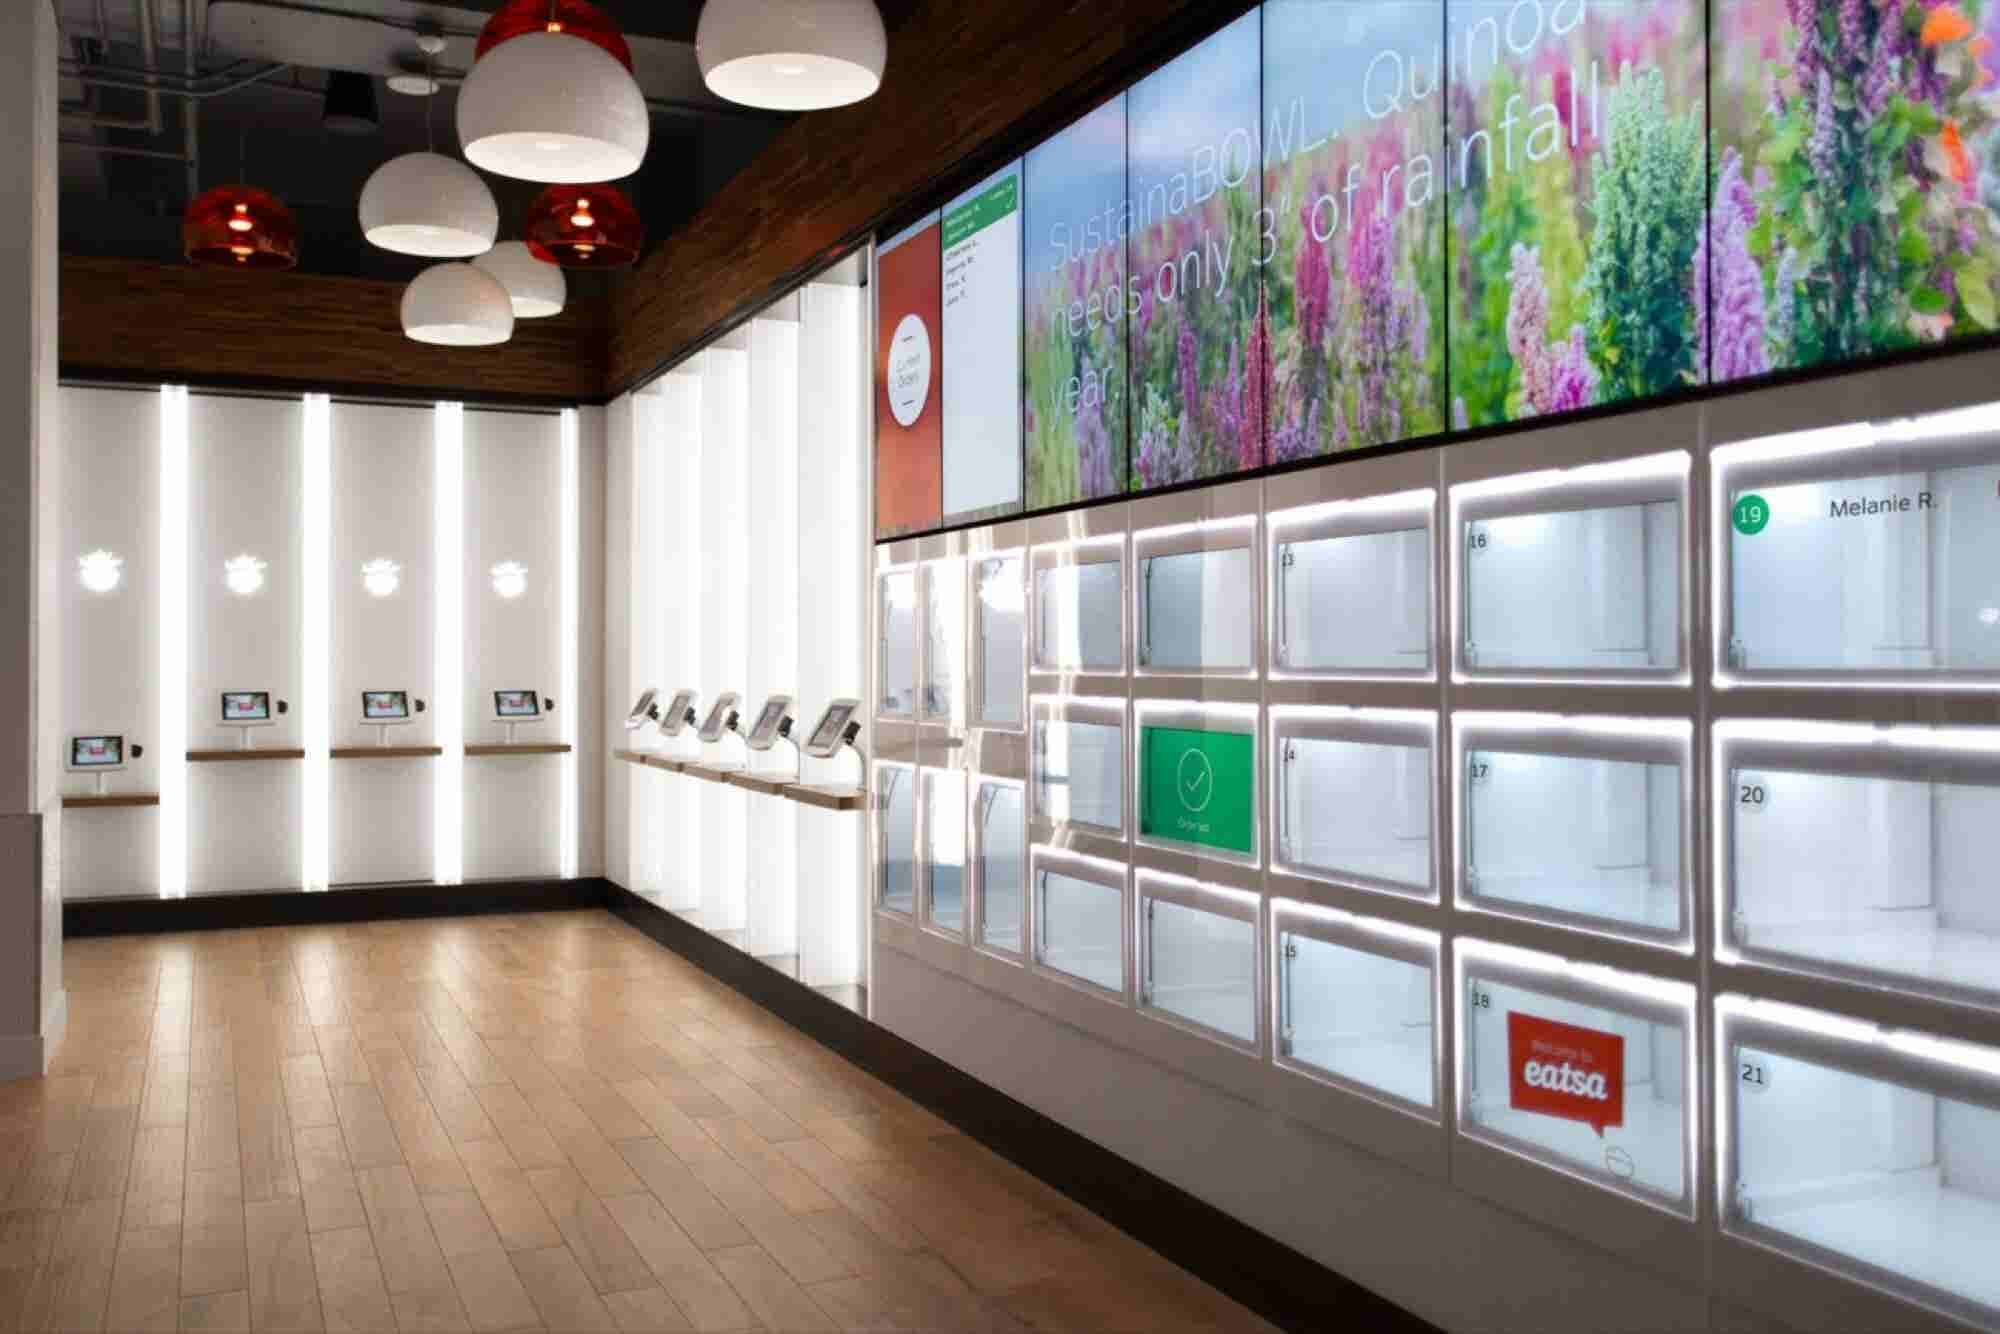 At This New Fast-Food Restaurant, Human Interaction Is Almost Zero